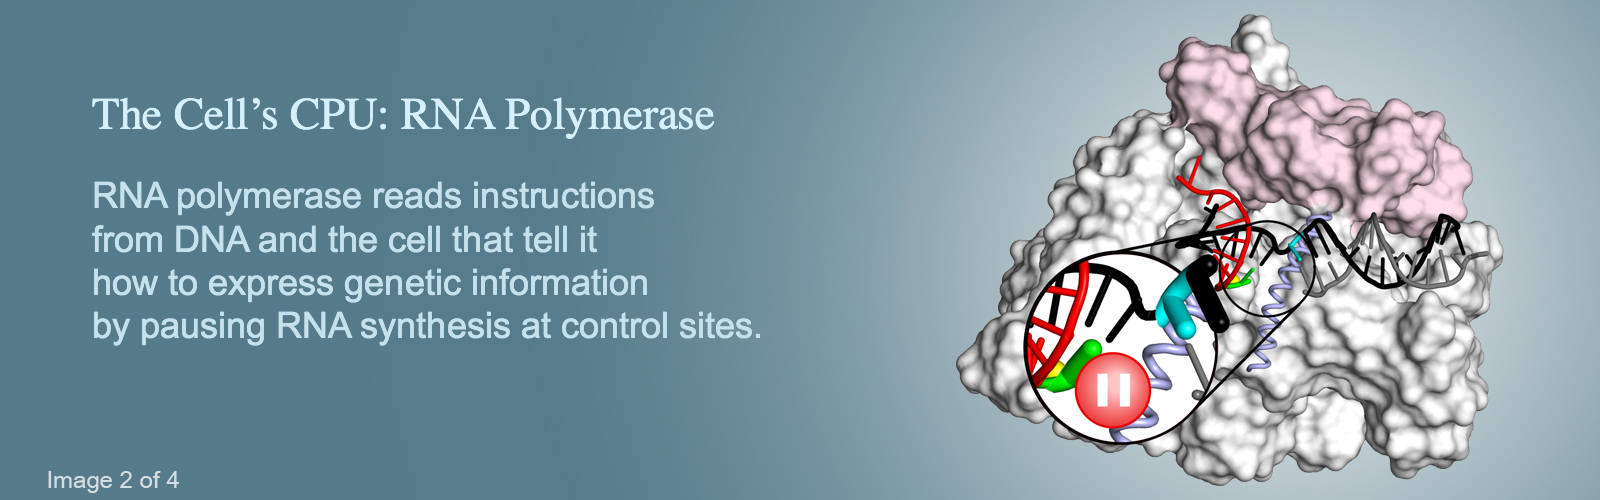 Hero image #2 with an illustration of RNA polymerase, version with text that reads: The Cell's CPU: RNA Polymerase; RNA polymerase reads instructions from DNA and the cell that tell it how to express genetic information by pausing RNA synthesis at control sites.